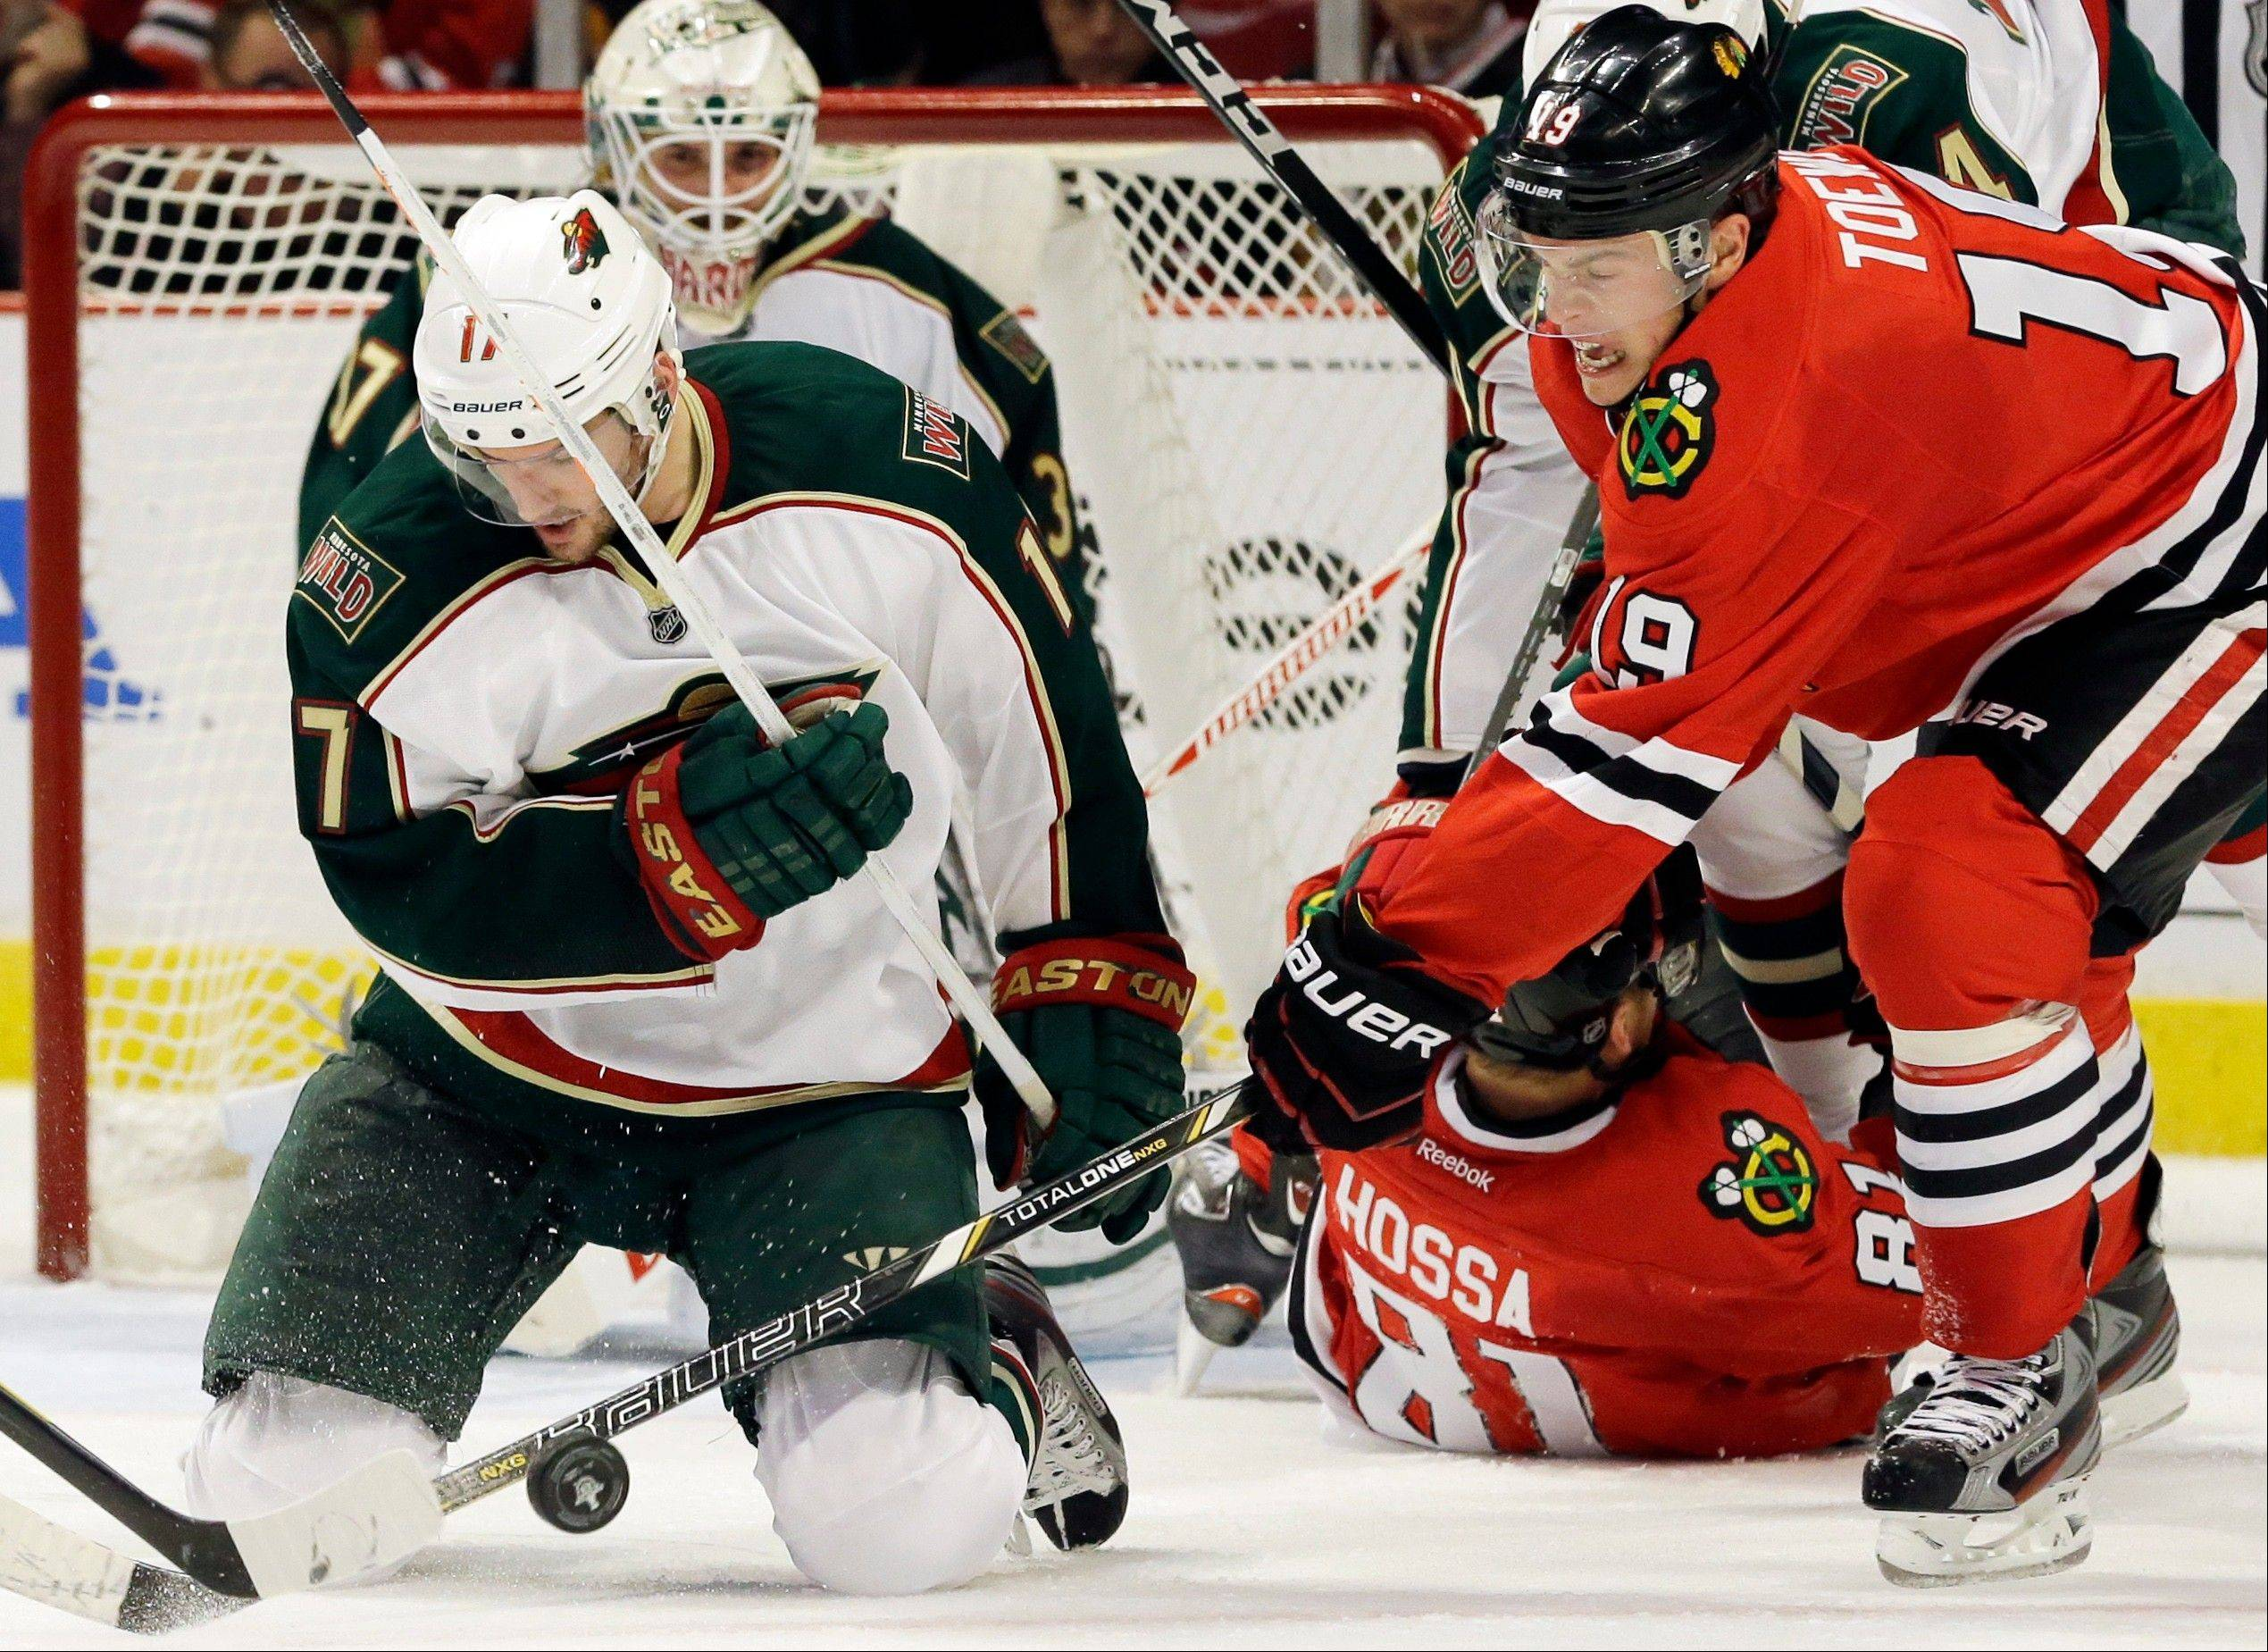 Chicago Blackhawks' Jonathan Toews (19) battles for the puck against Minnesota Wild's Torrey Mitchell (17) during the second period of Game 2 of an NHL hockey Stanley Cup first-round playoff series in Chicago, Friday, May 3, 2013.